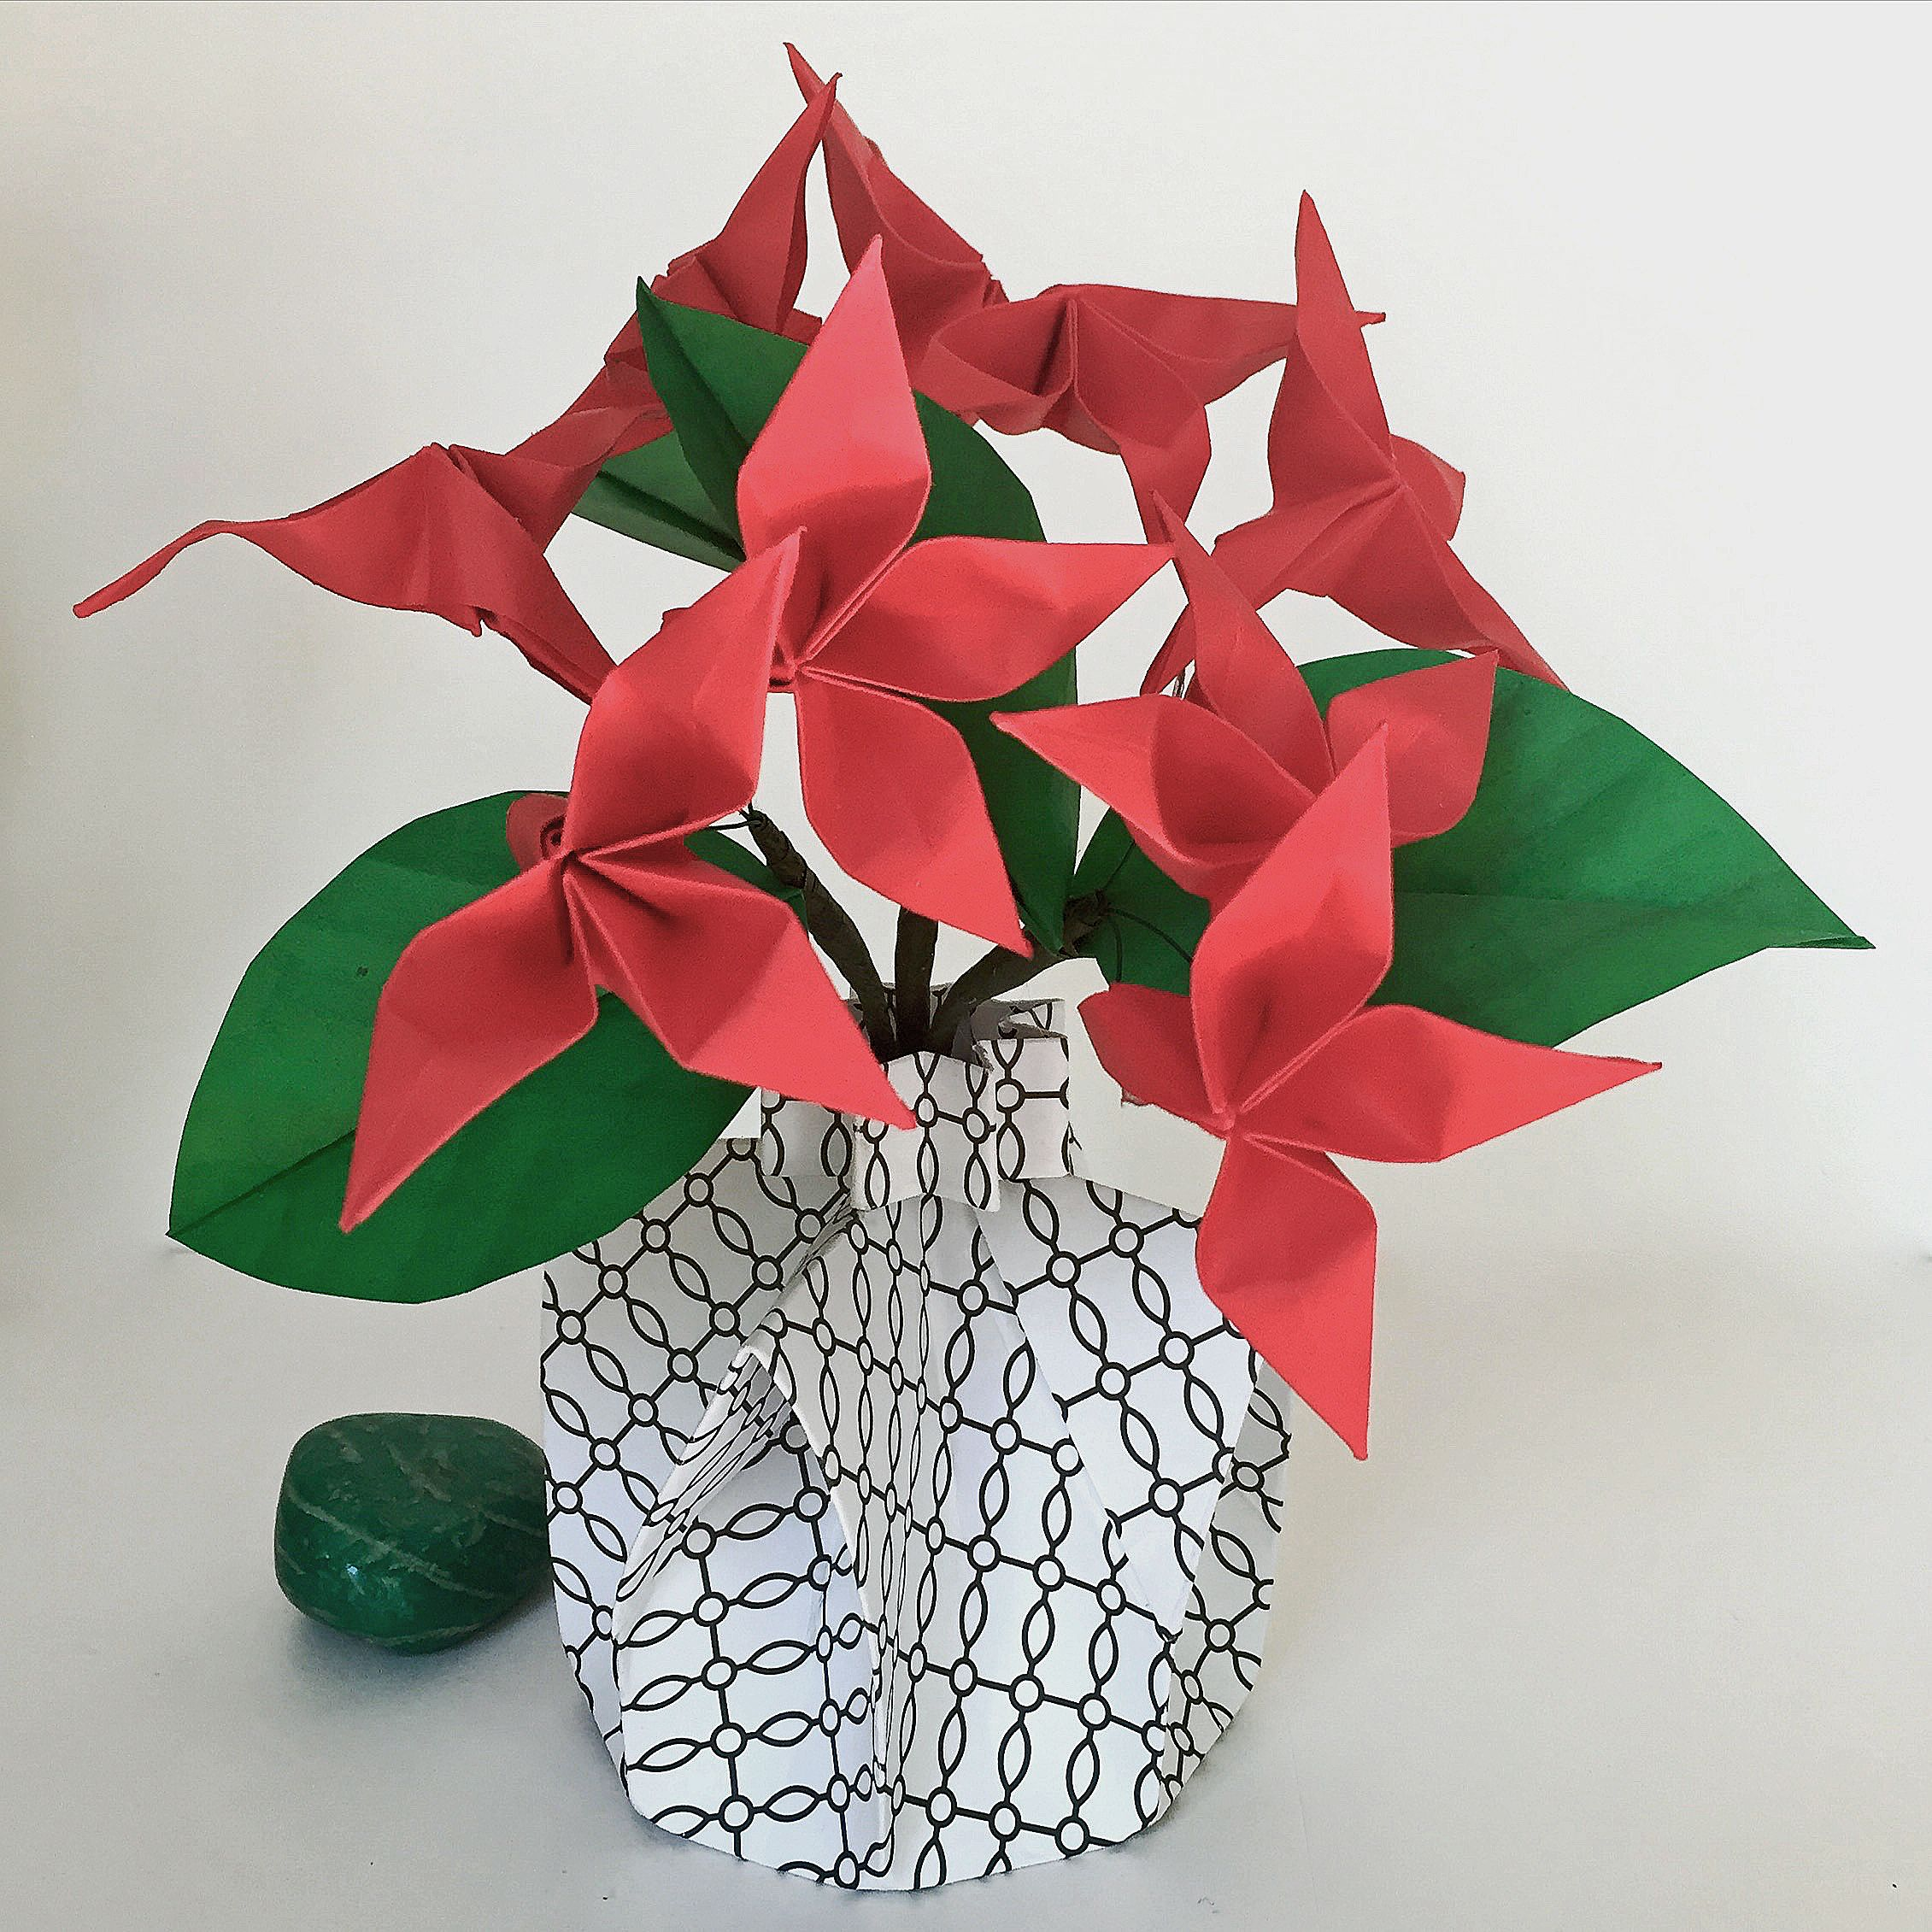 1999 Small Origami Flower Arramgement Make Everything Look